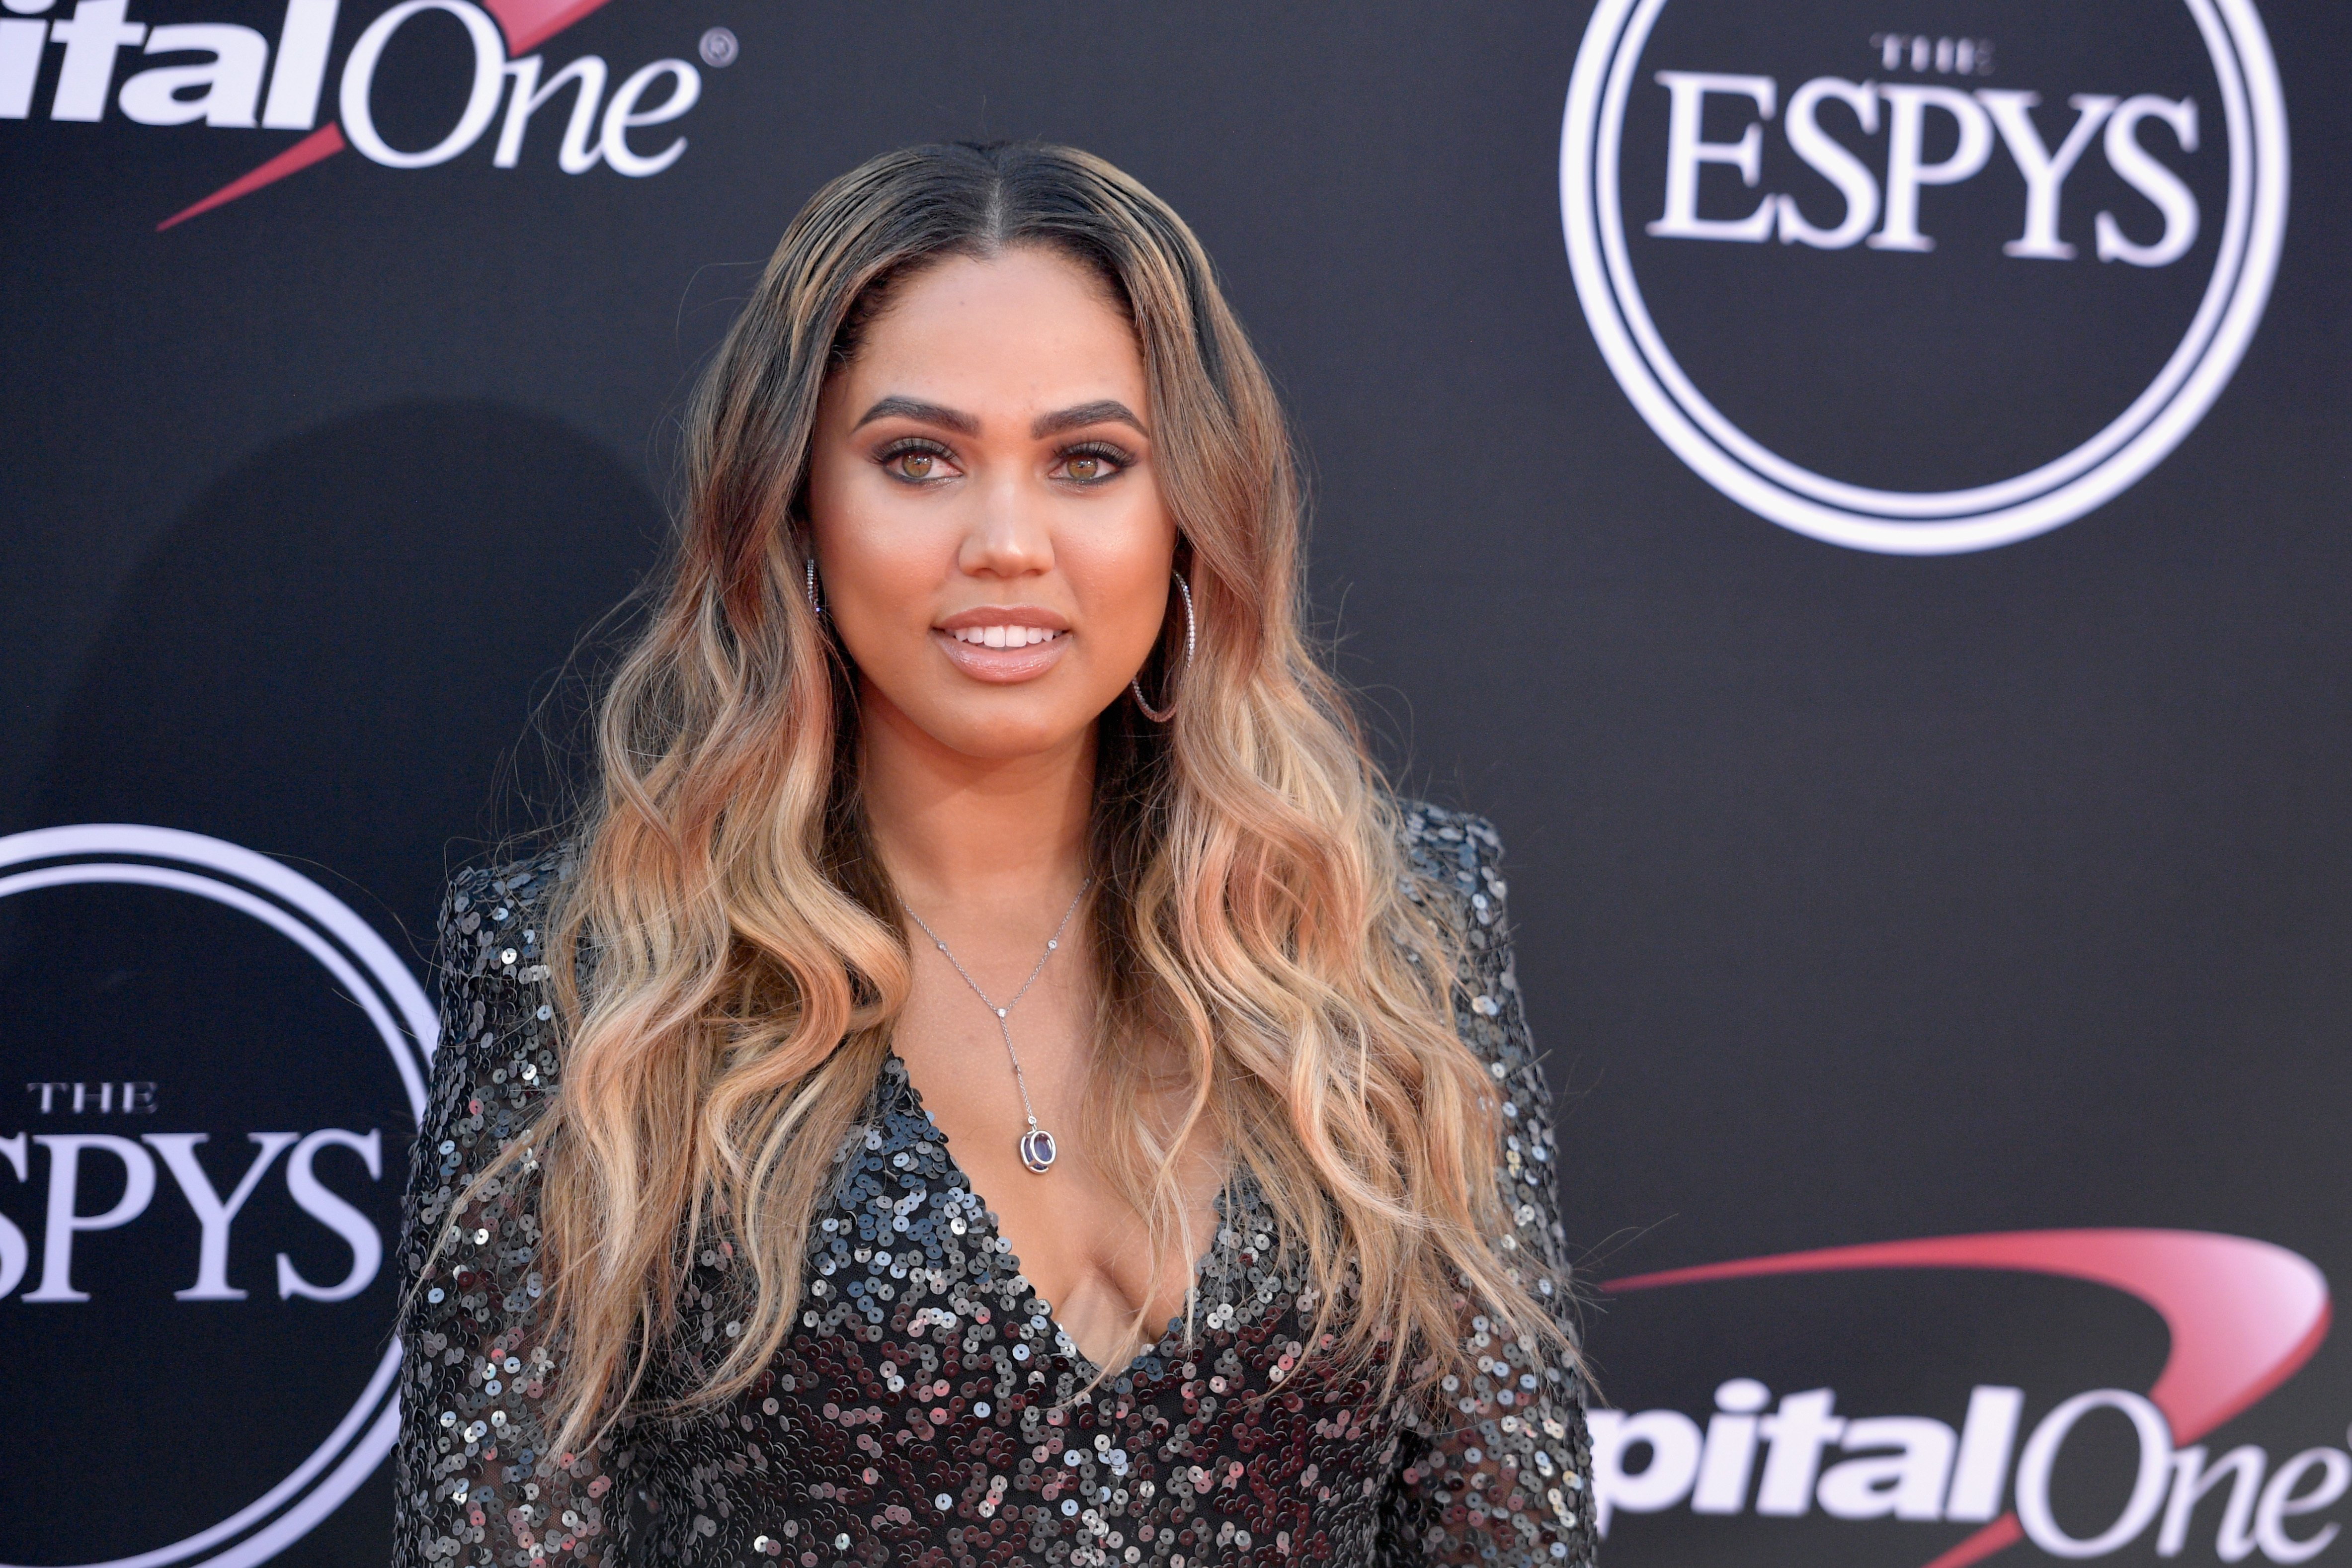 Ayesha Curry at The ESPYS at Microsoft Theater on July 12, 2017 in California | Photo: Getty Images